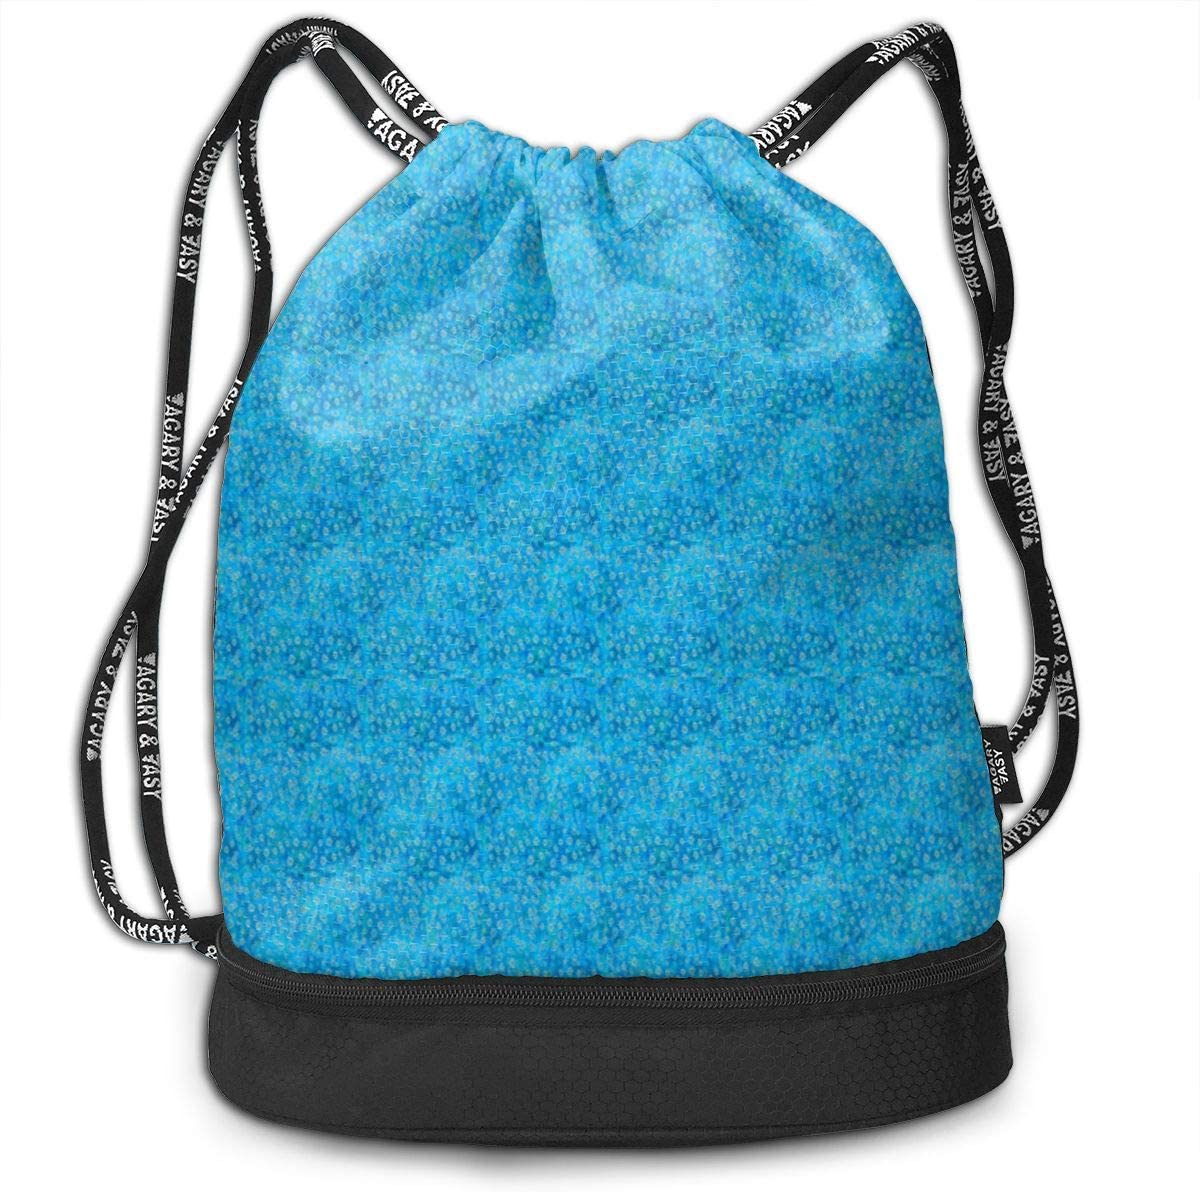 Blue Daisies Drawstring Backpack Sports Athletic Gym Cinch Sack String Storage Bags for Hiking Travel Beach